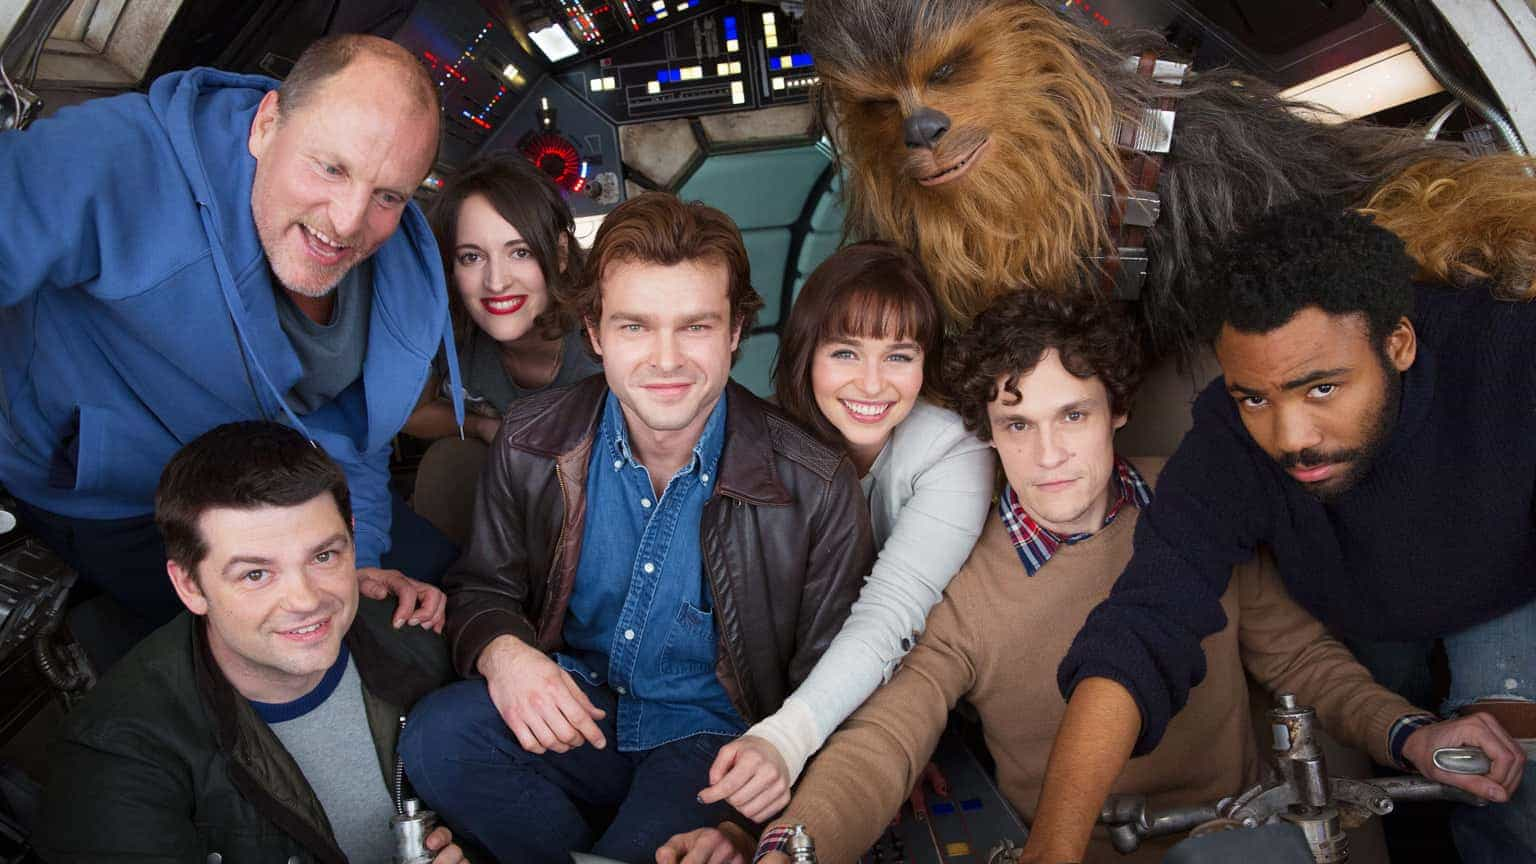 Han Solo cast post for a photo in the cockpit of the Millennium Falcon